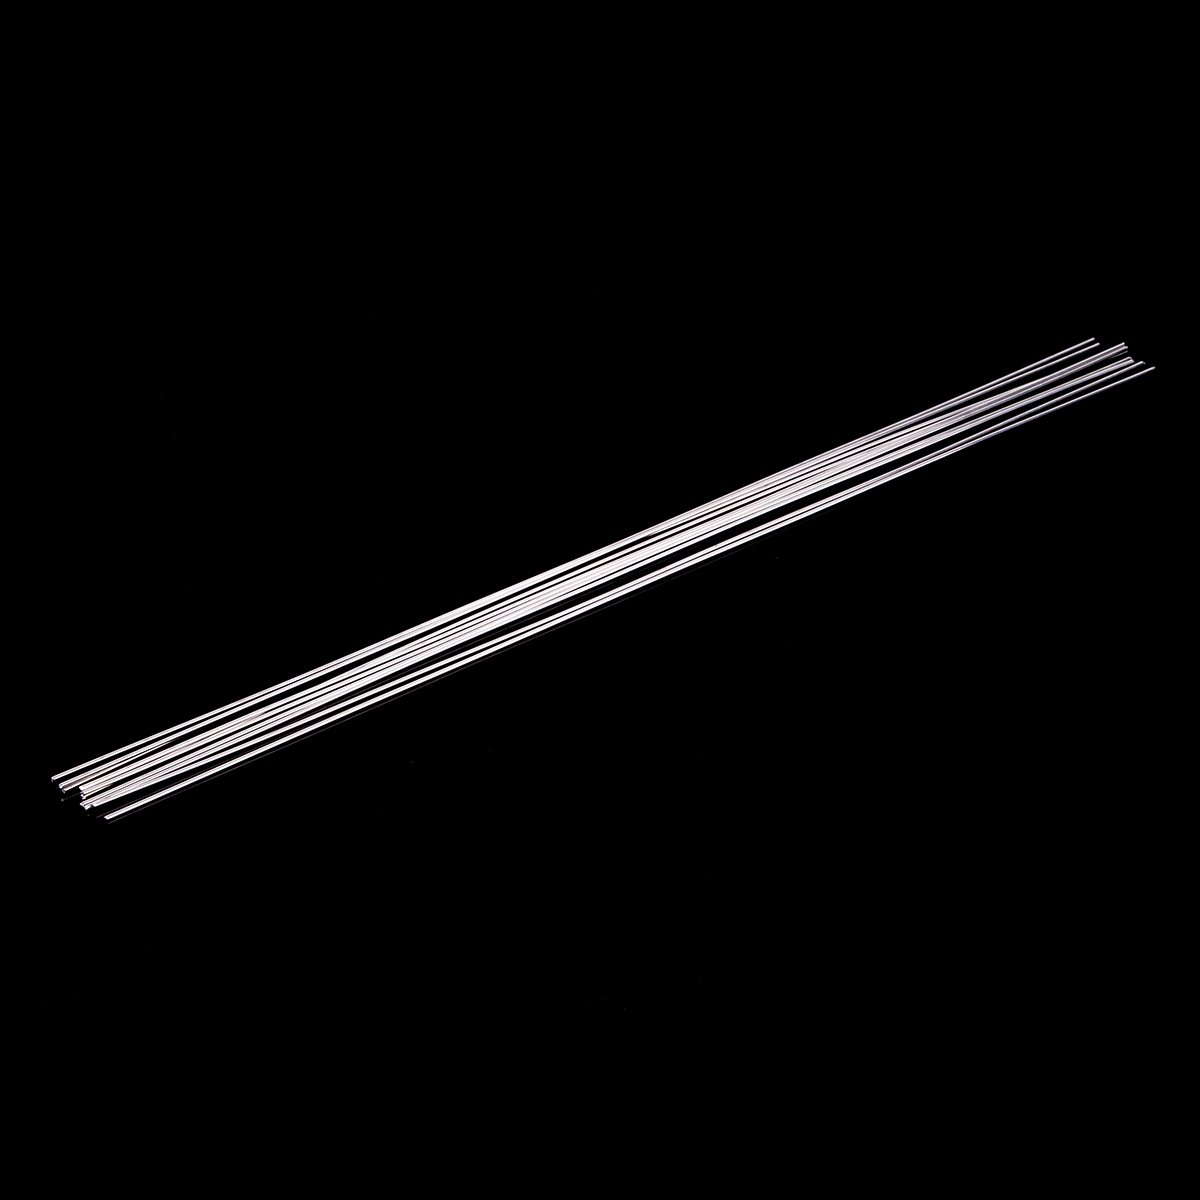 10pcs Metal Aluminum Magnesium Silver Welding Rod with Low Temperature 1.6mm Diameter 450mm Length